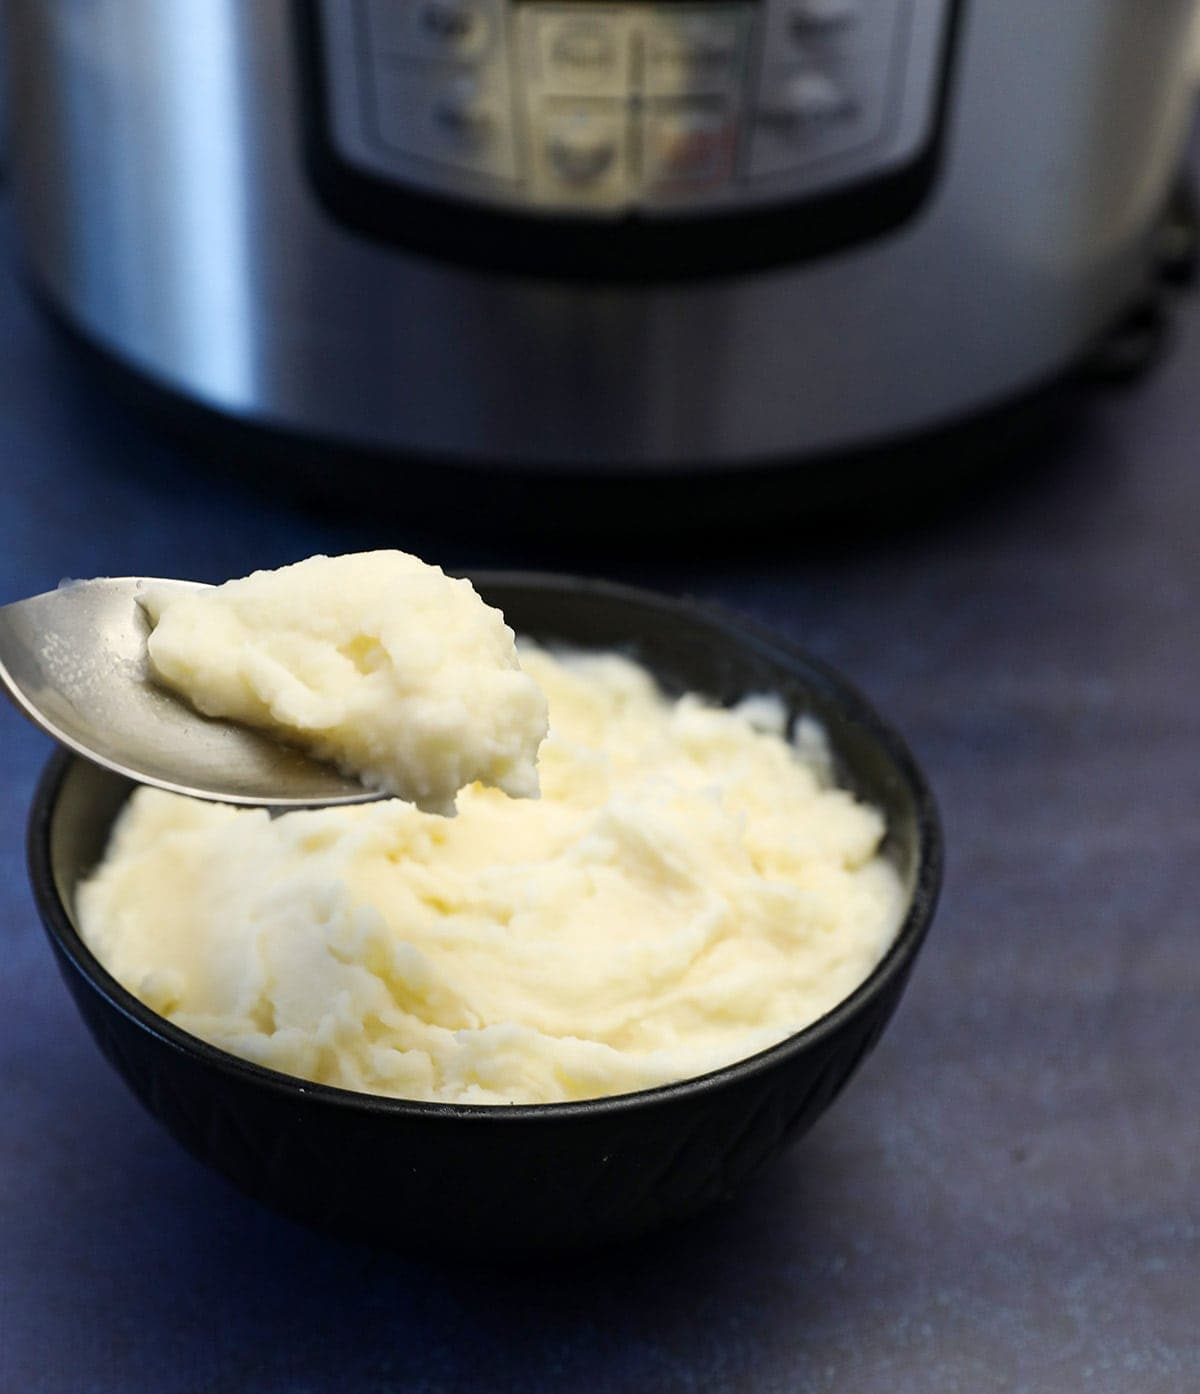 mashed potatoes in a black bowl